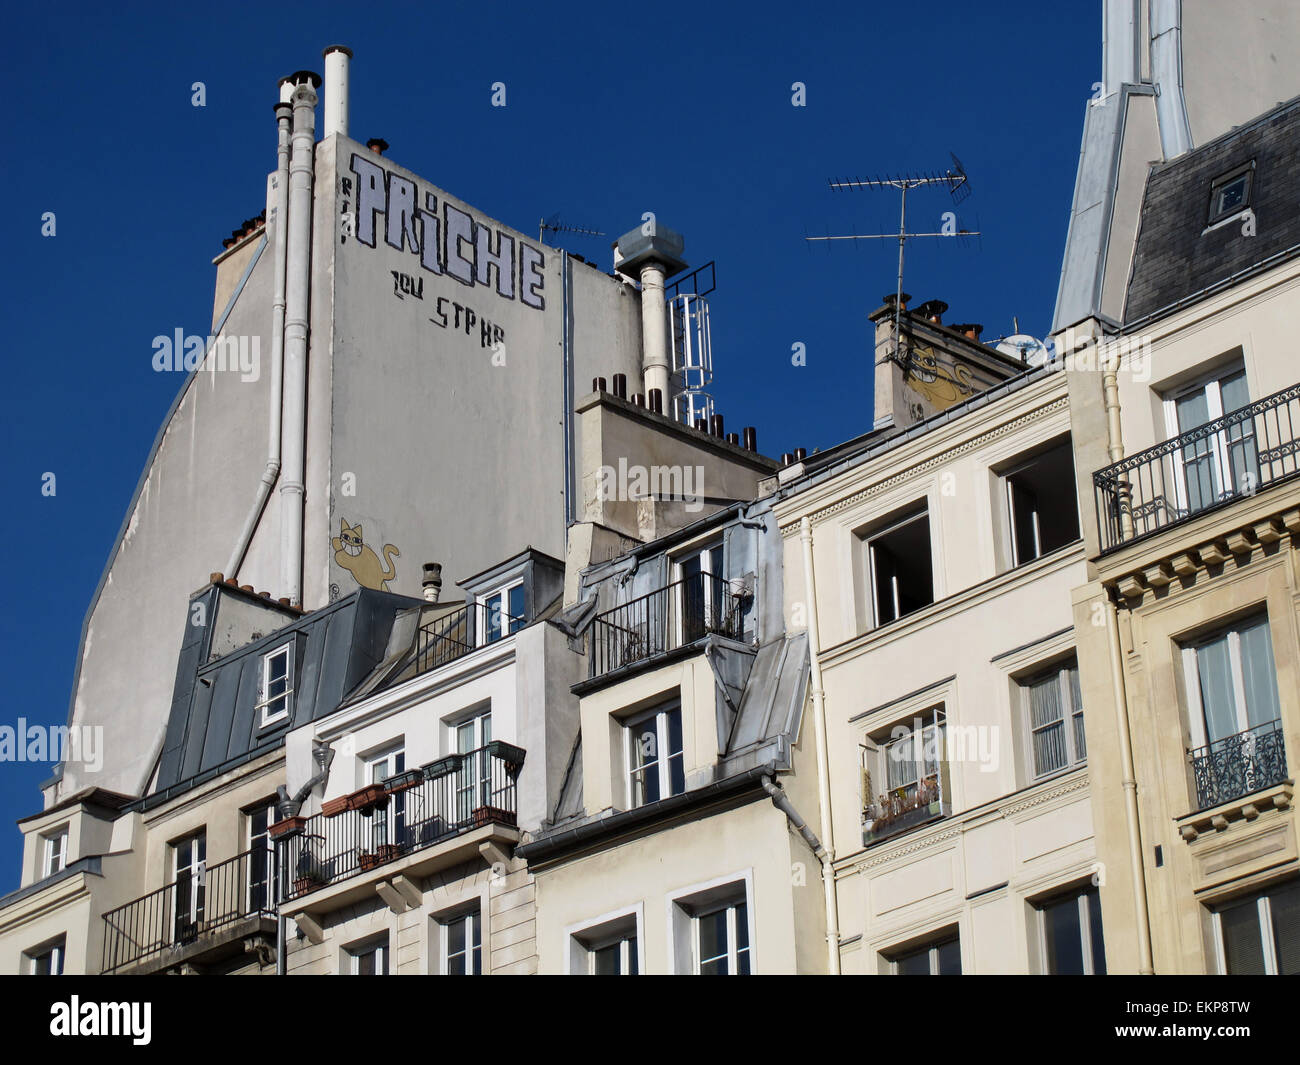 M. Chat graffiti by Thoma Vuille,on old Paris roofs and chimney,France - Stock Image